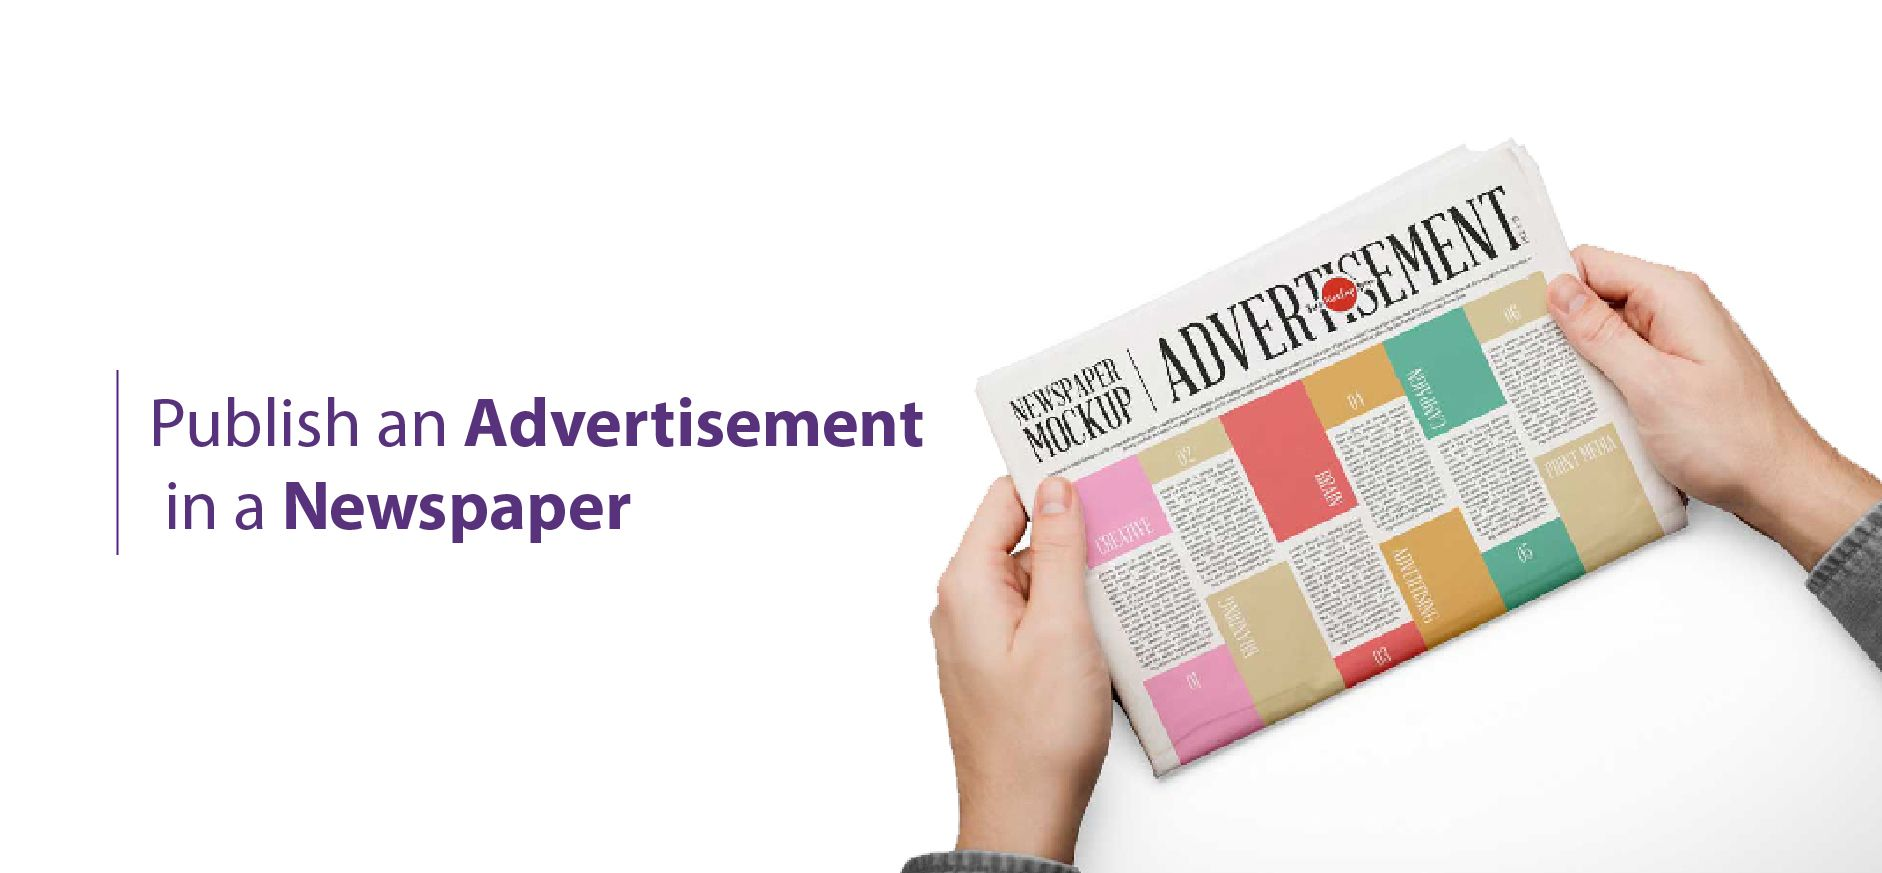 Publish-an-advertisement-in-a-newspaper